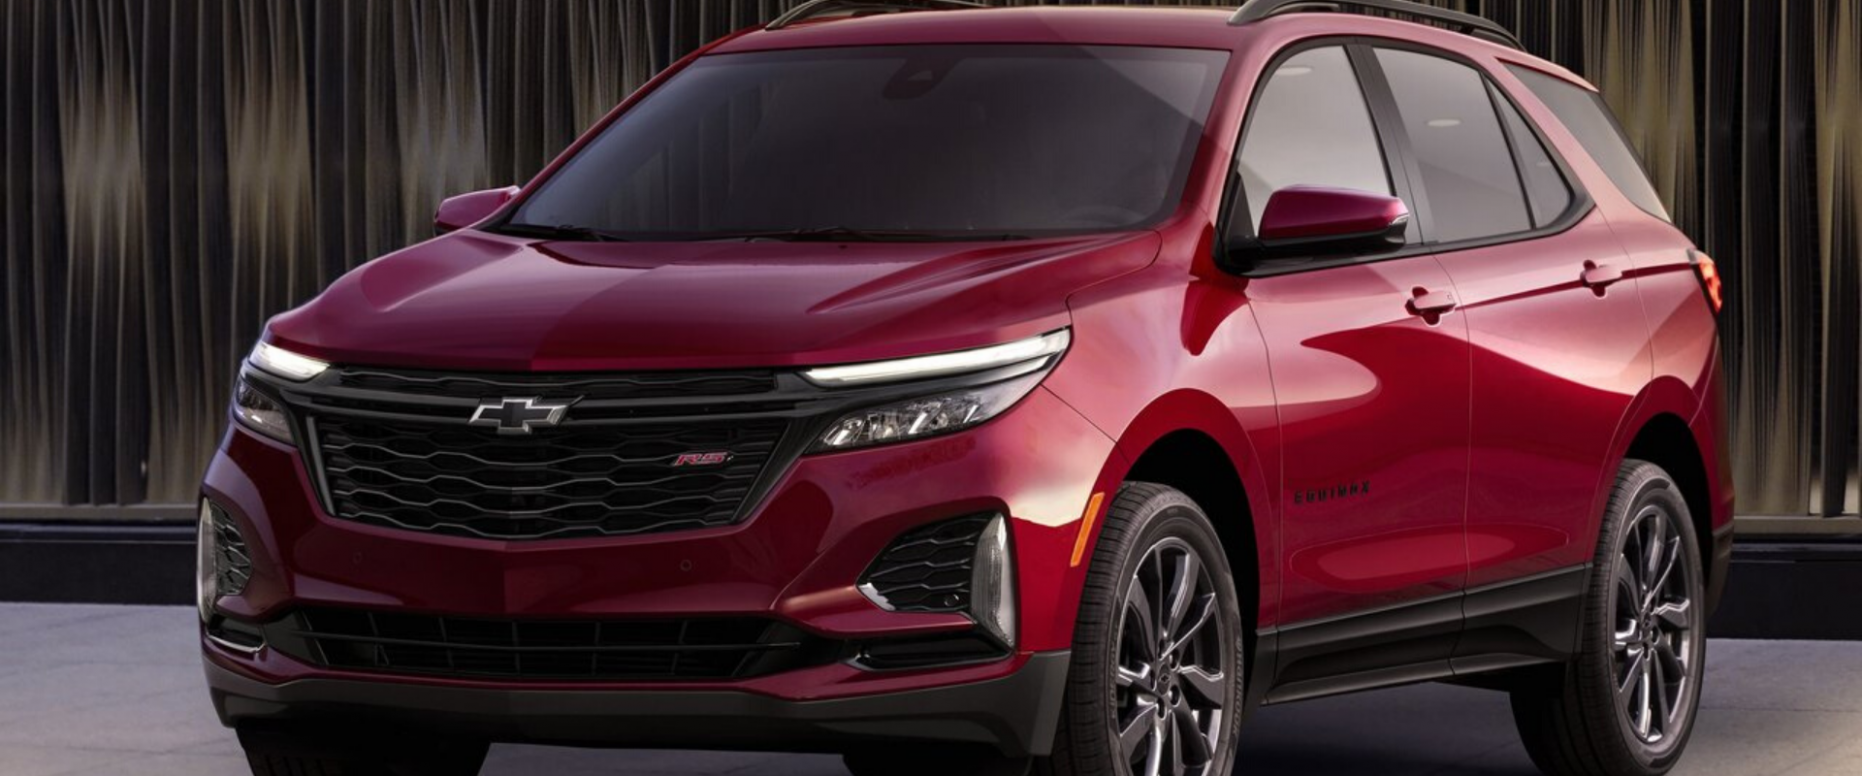 Price and Release date 2022 Chevy Equinox